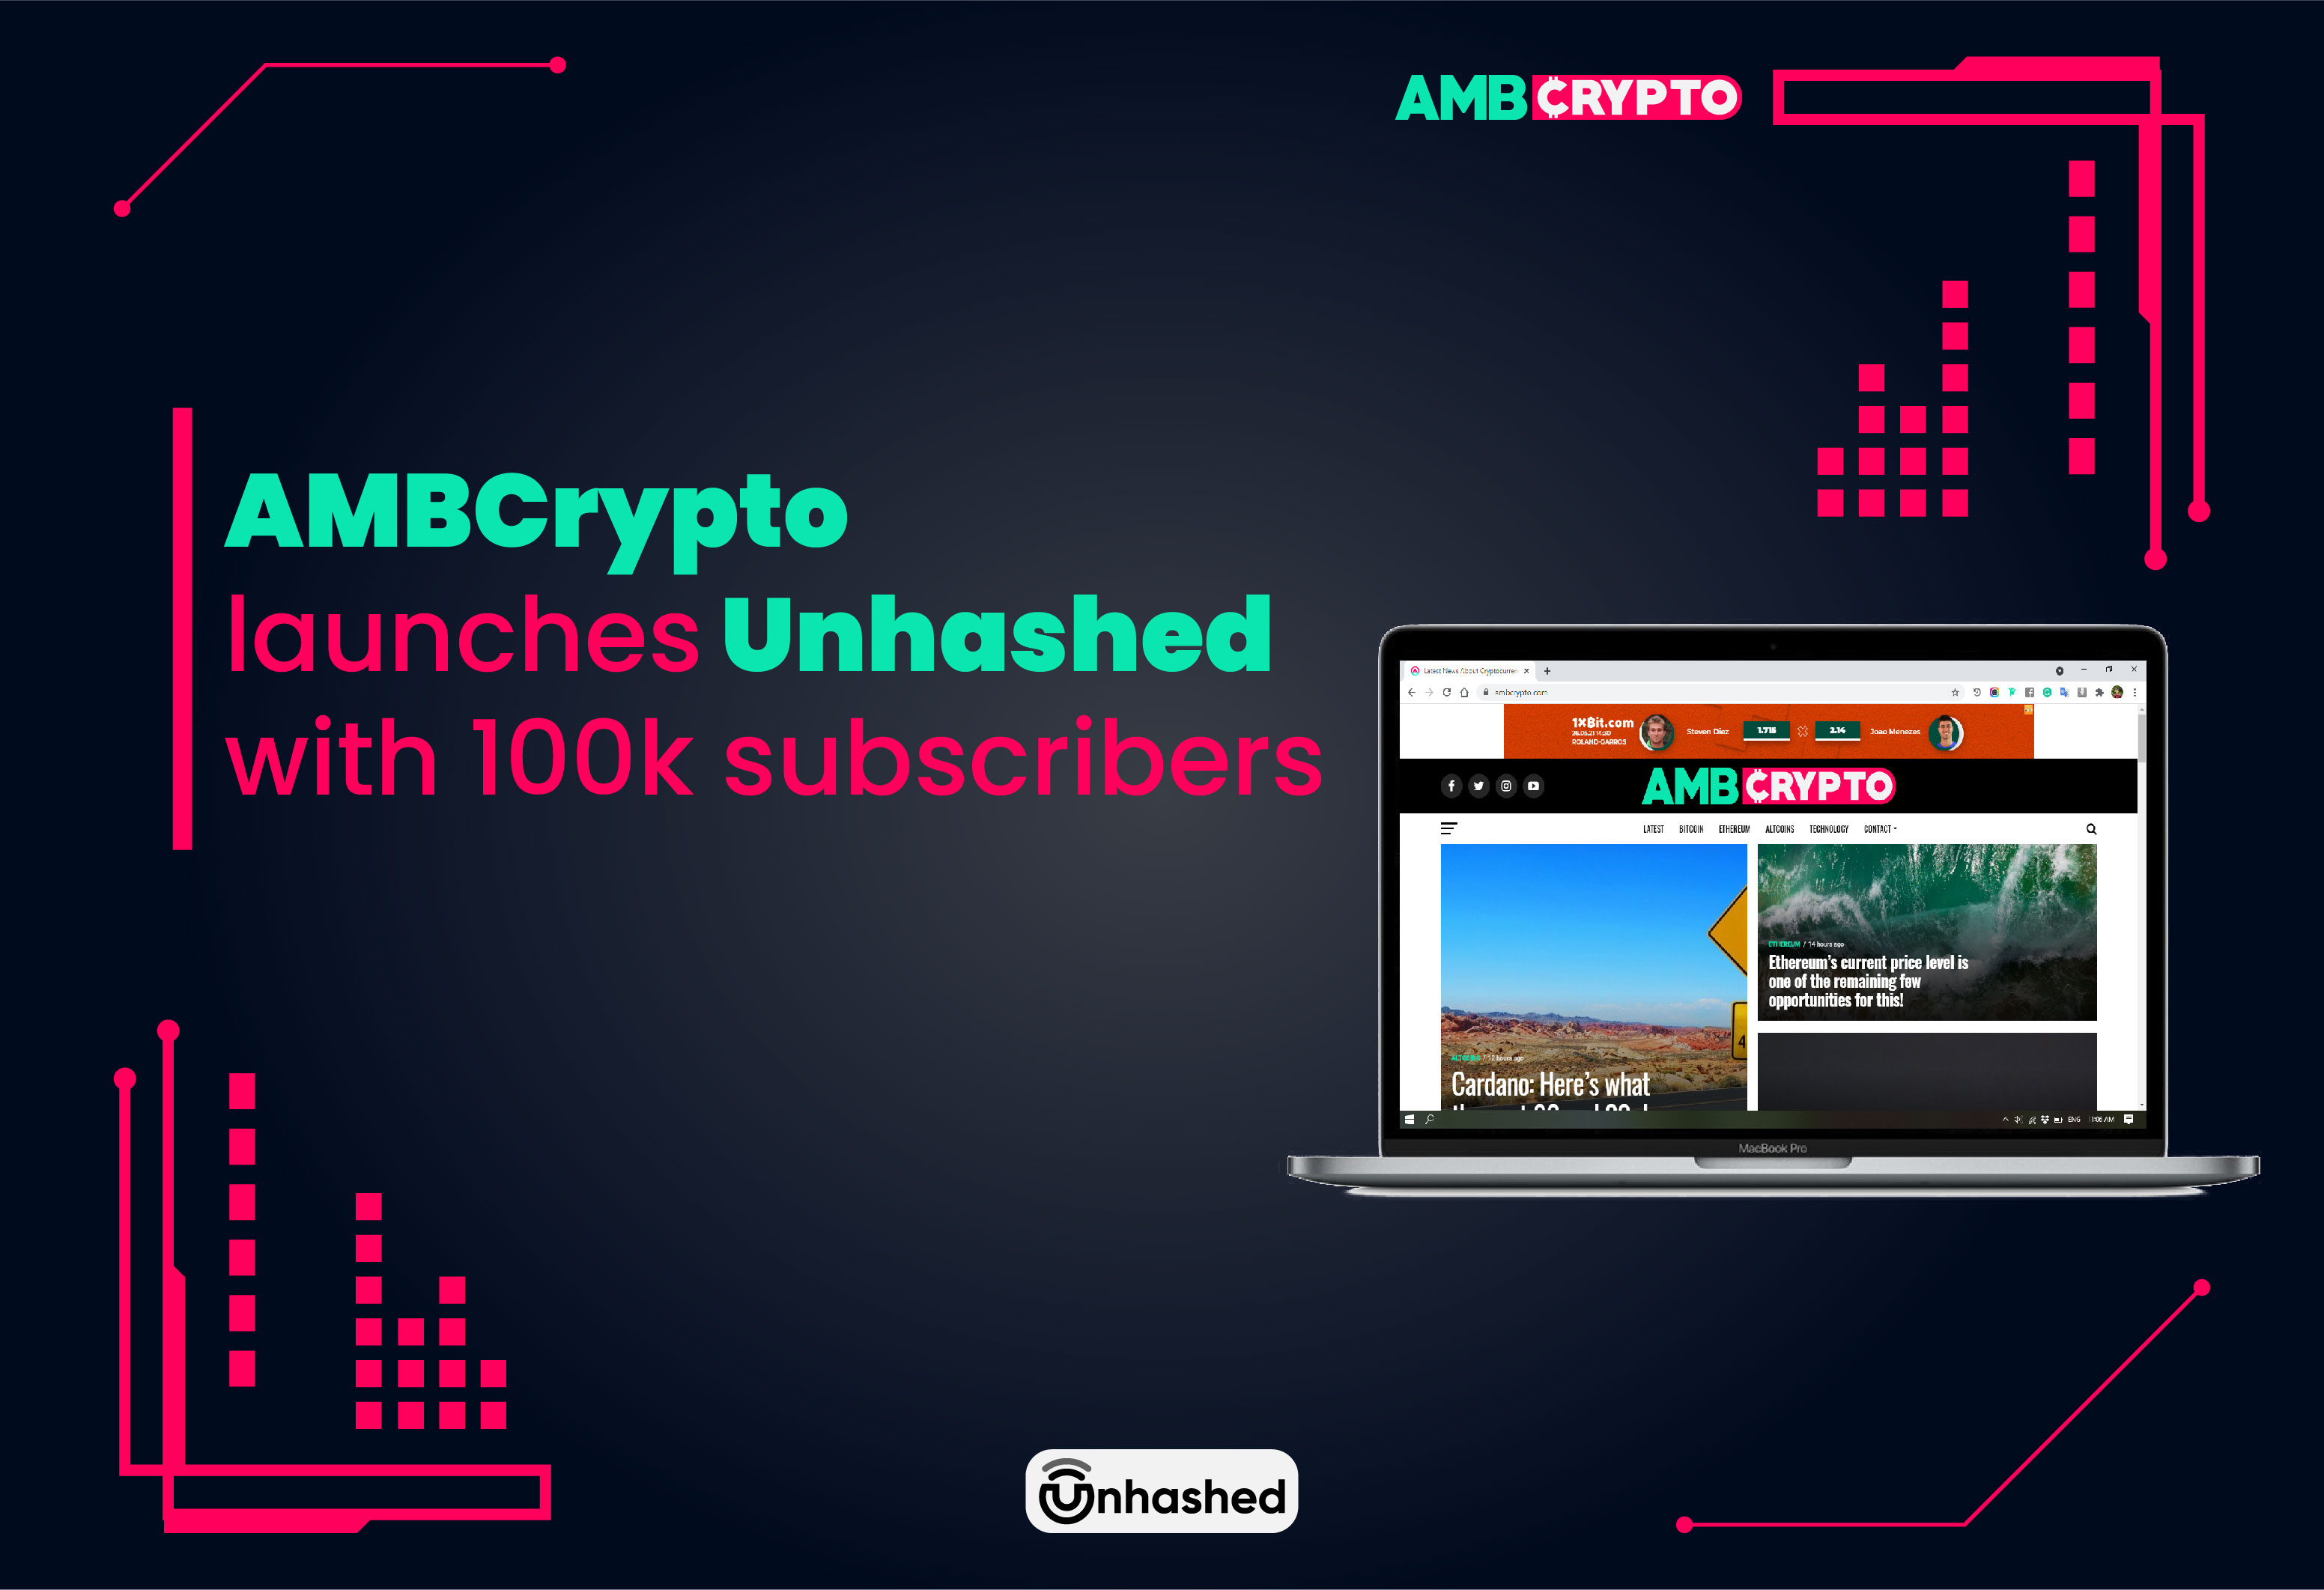 AMBCrypto launches Unhashed with 100k subscribers